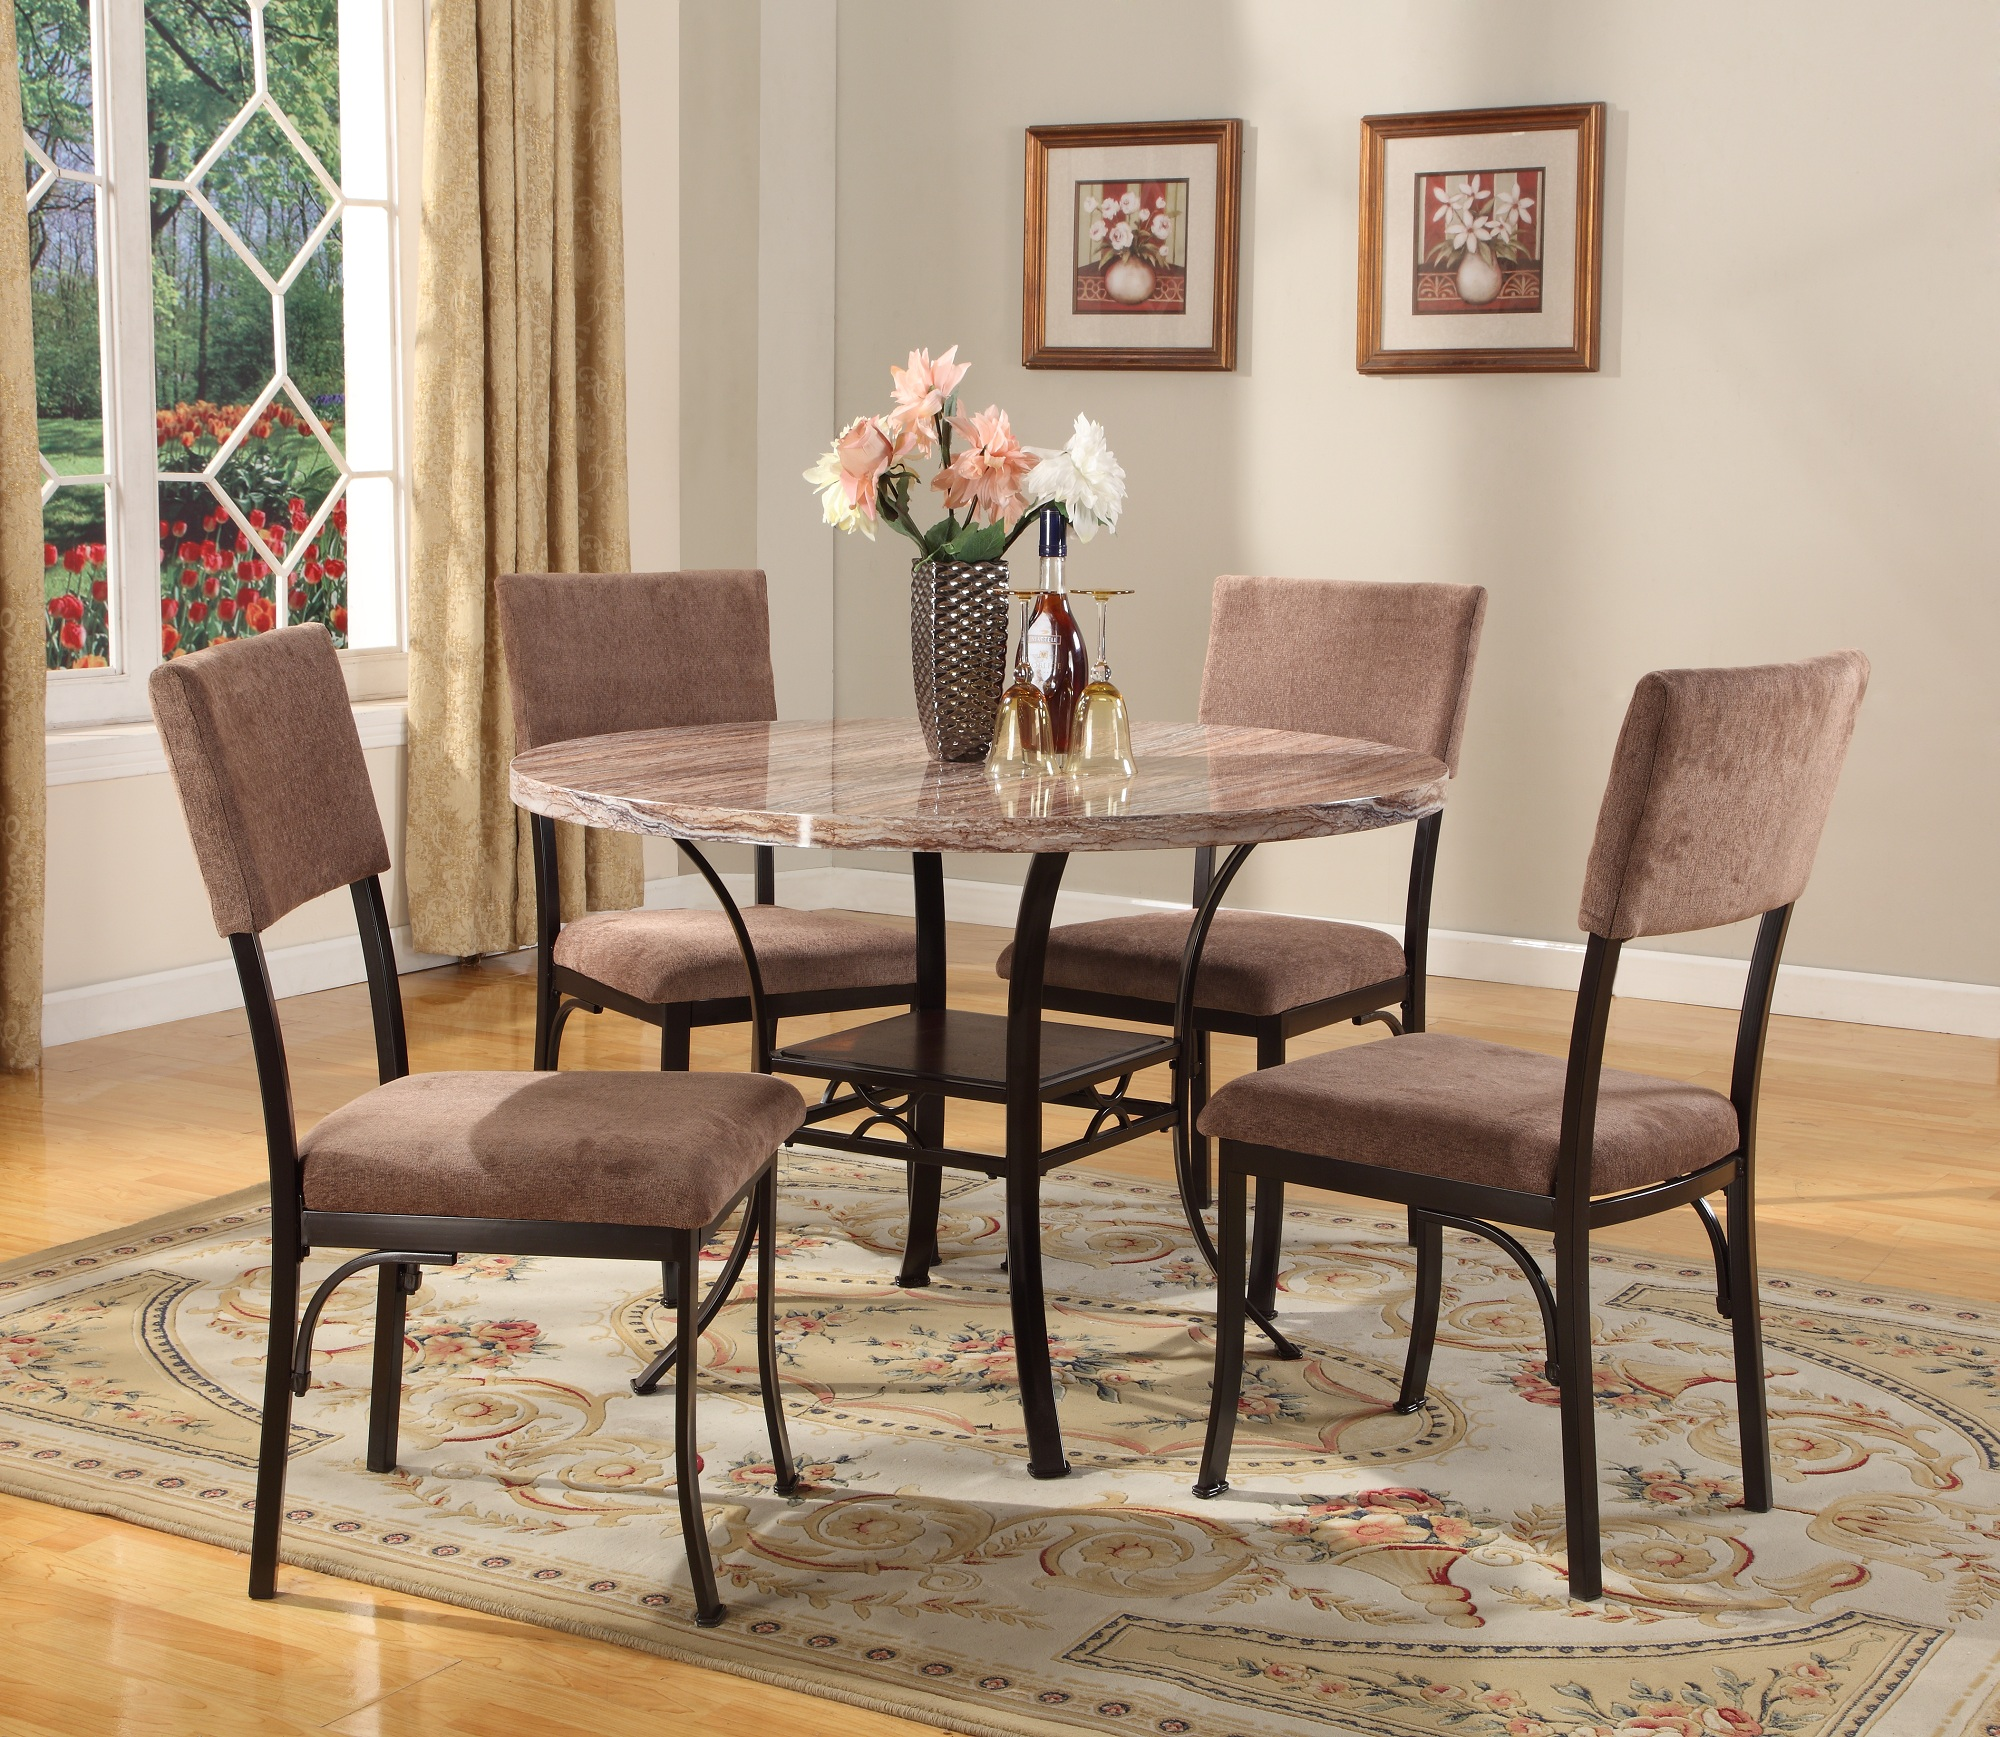 extendable supreme dining round chairs inventiveness table glass compact room set most bamboo